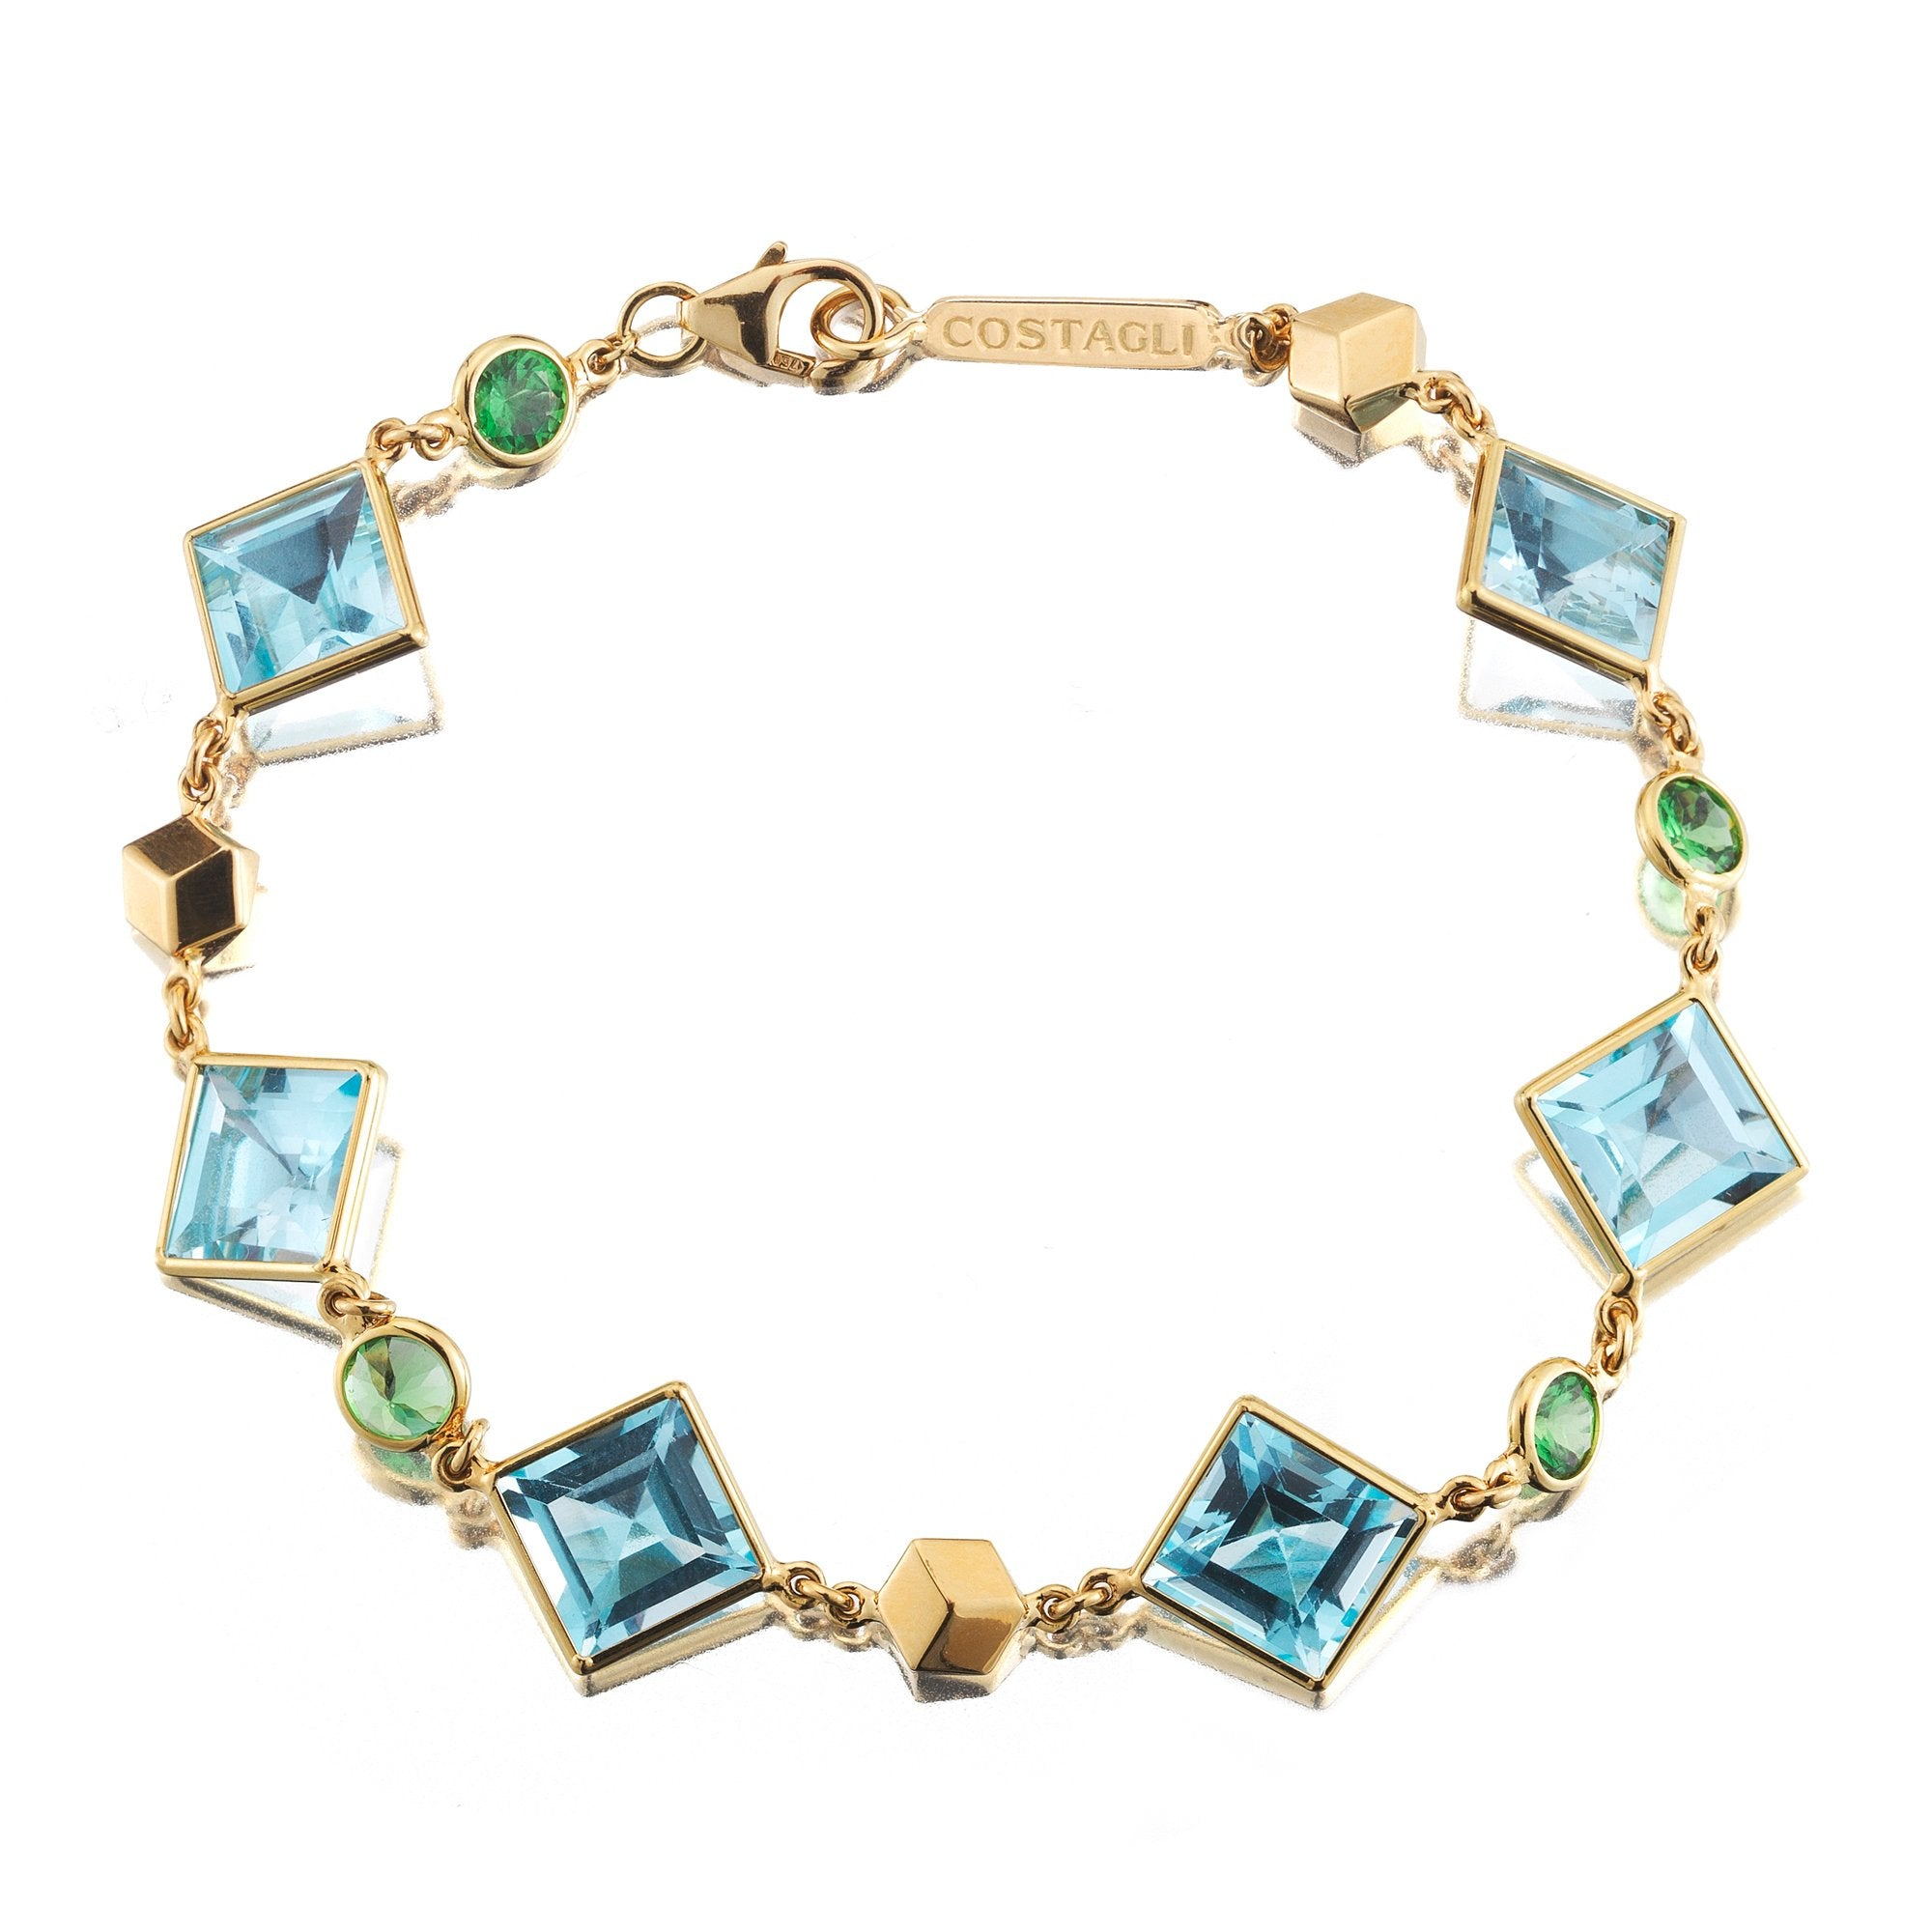 18kt Yellow Gold Blue Topaz And Tsavorite Florentine Bracelet - Paolo Costagli